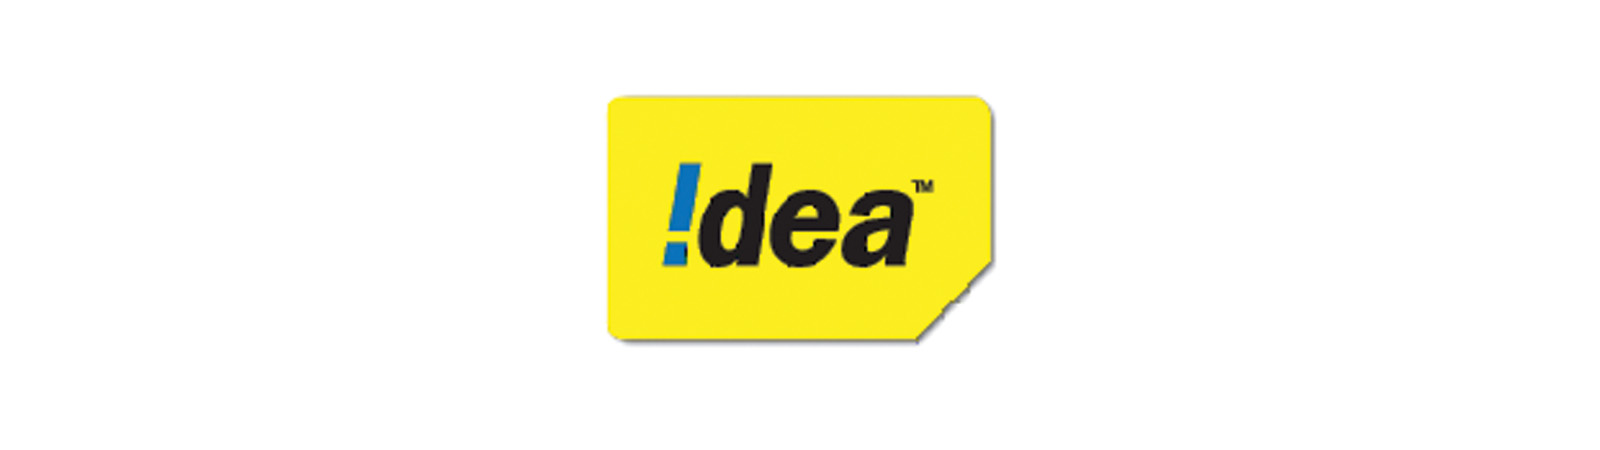 Idea Cellular Ltd. Logo Image